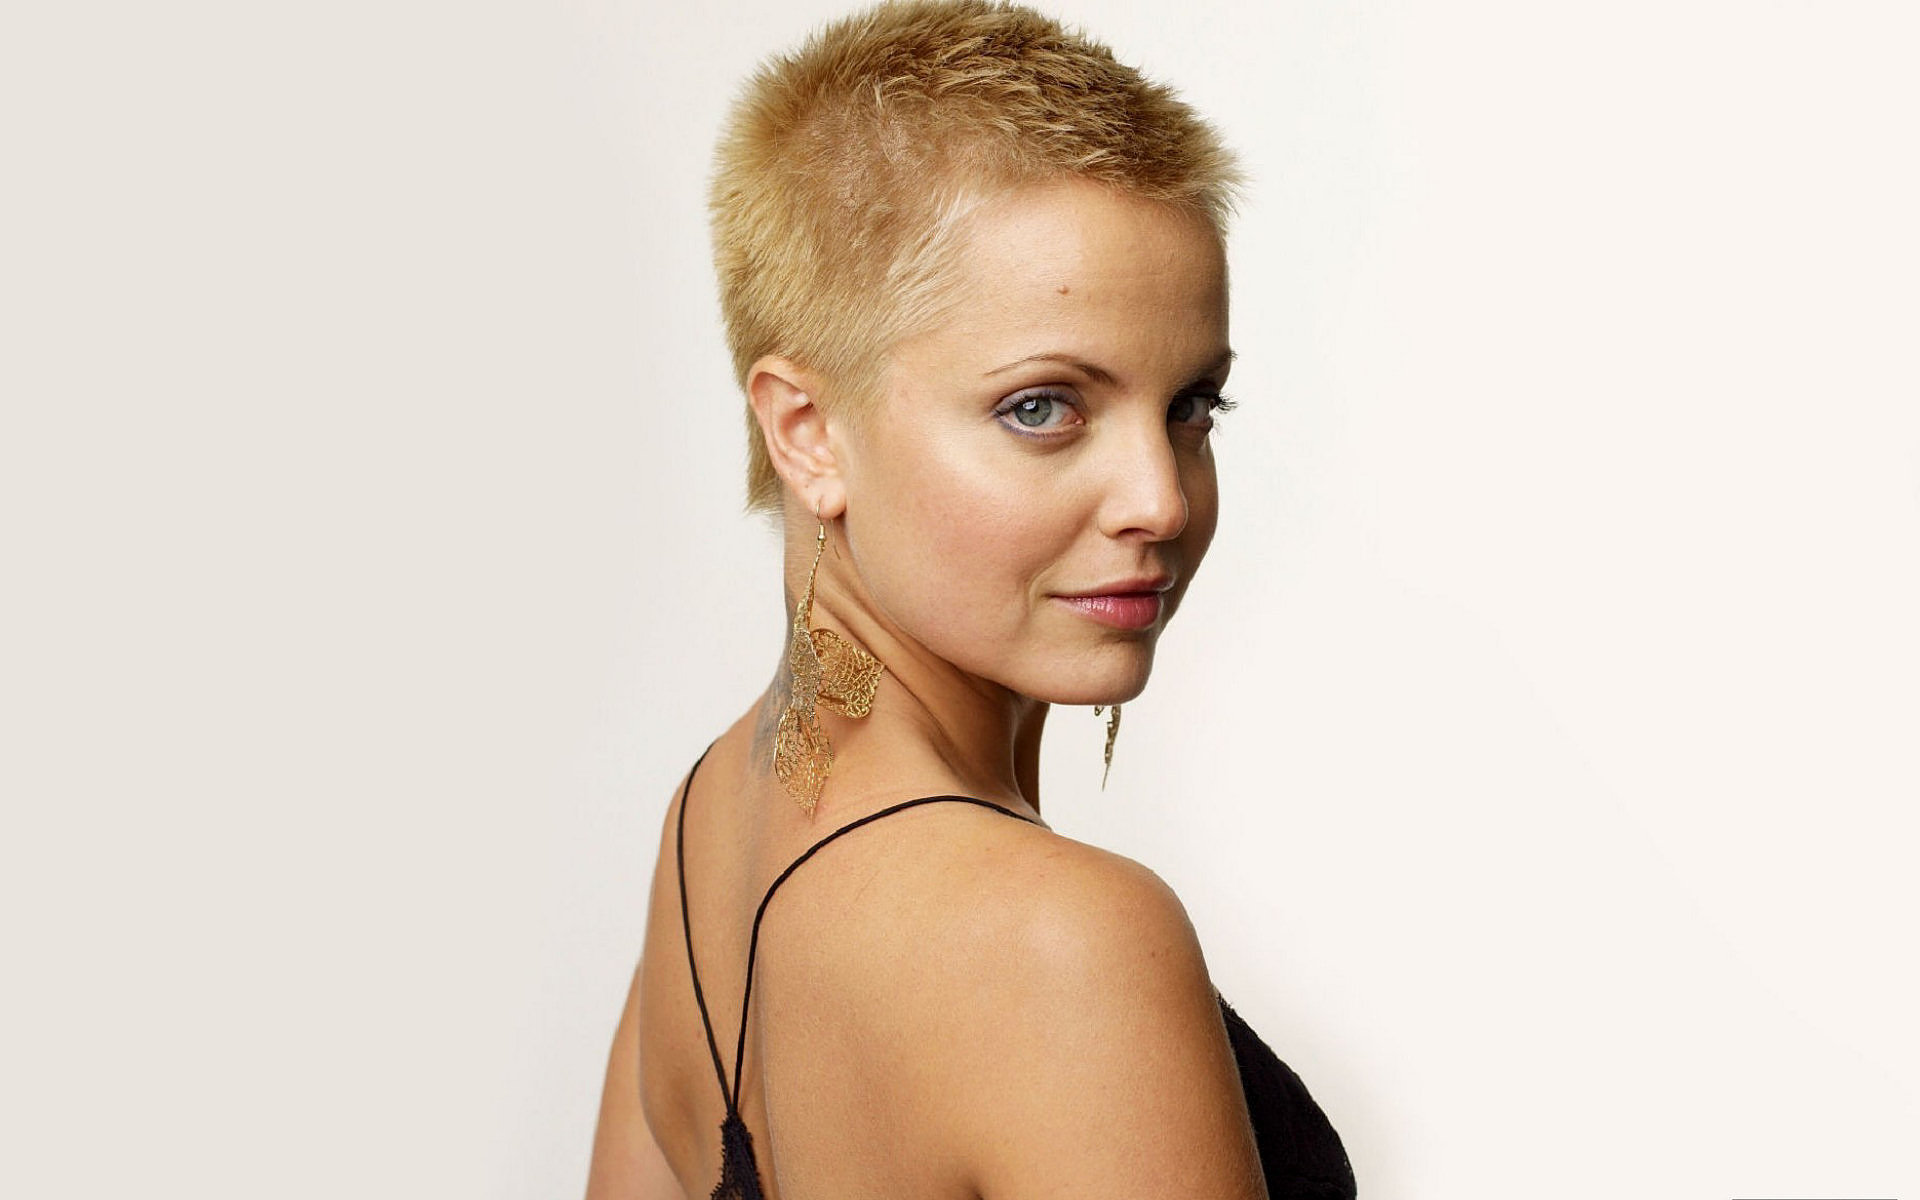 Free Mena Suvari high quality wallpaper ID:445569 for hd 1920x1200 computer